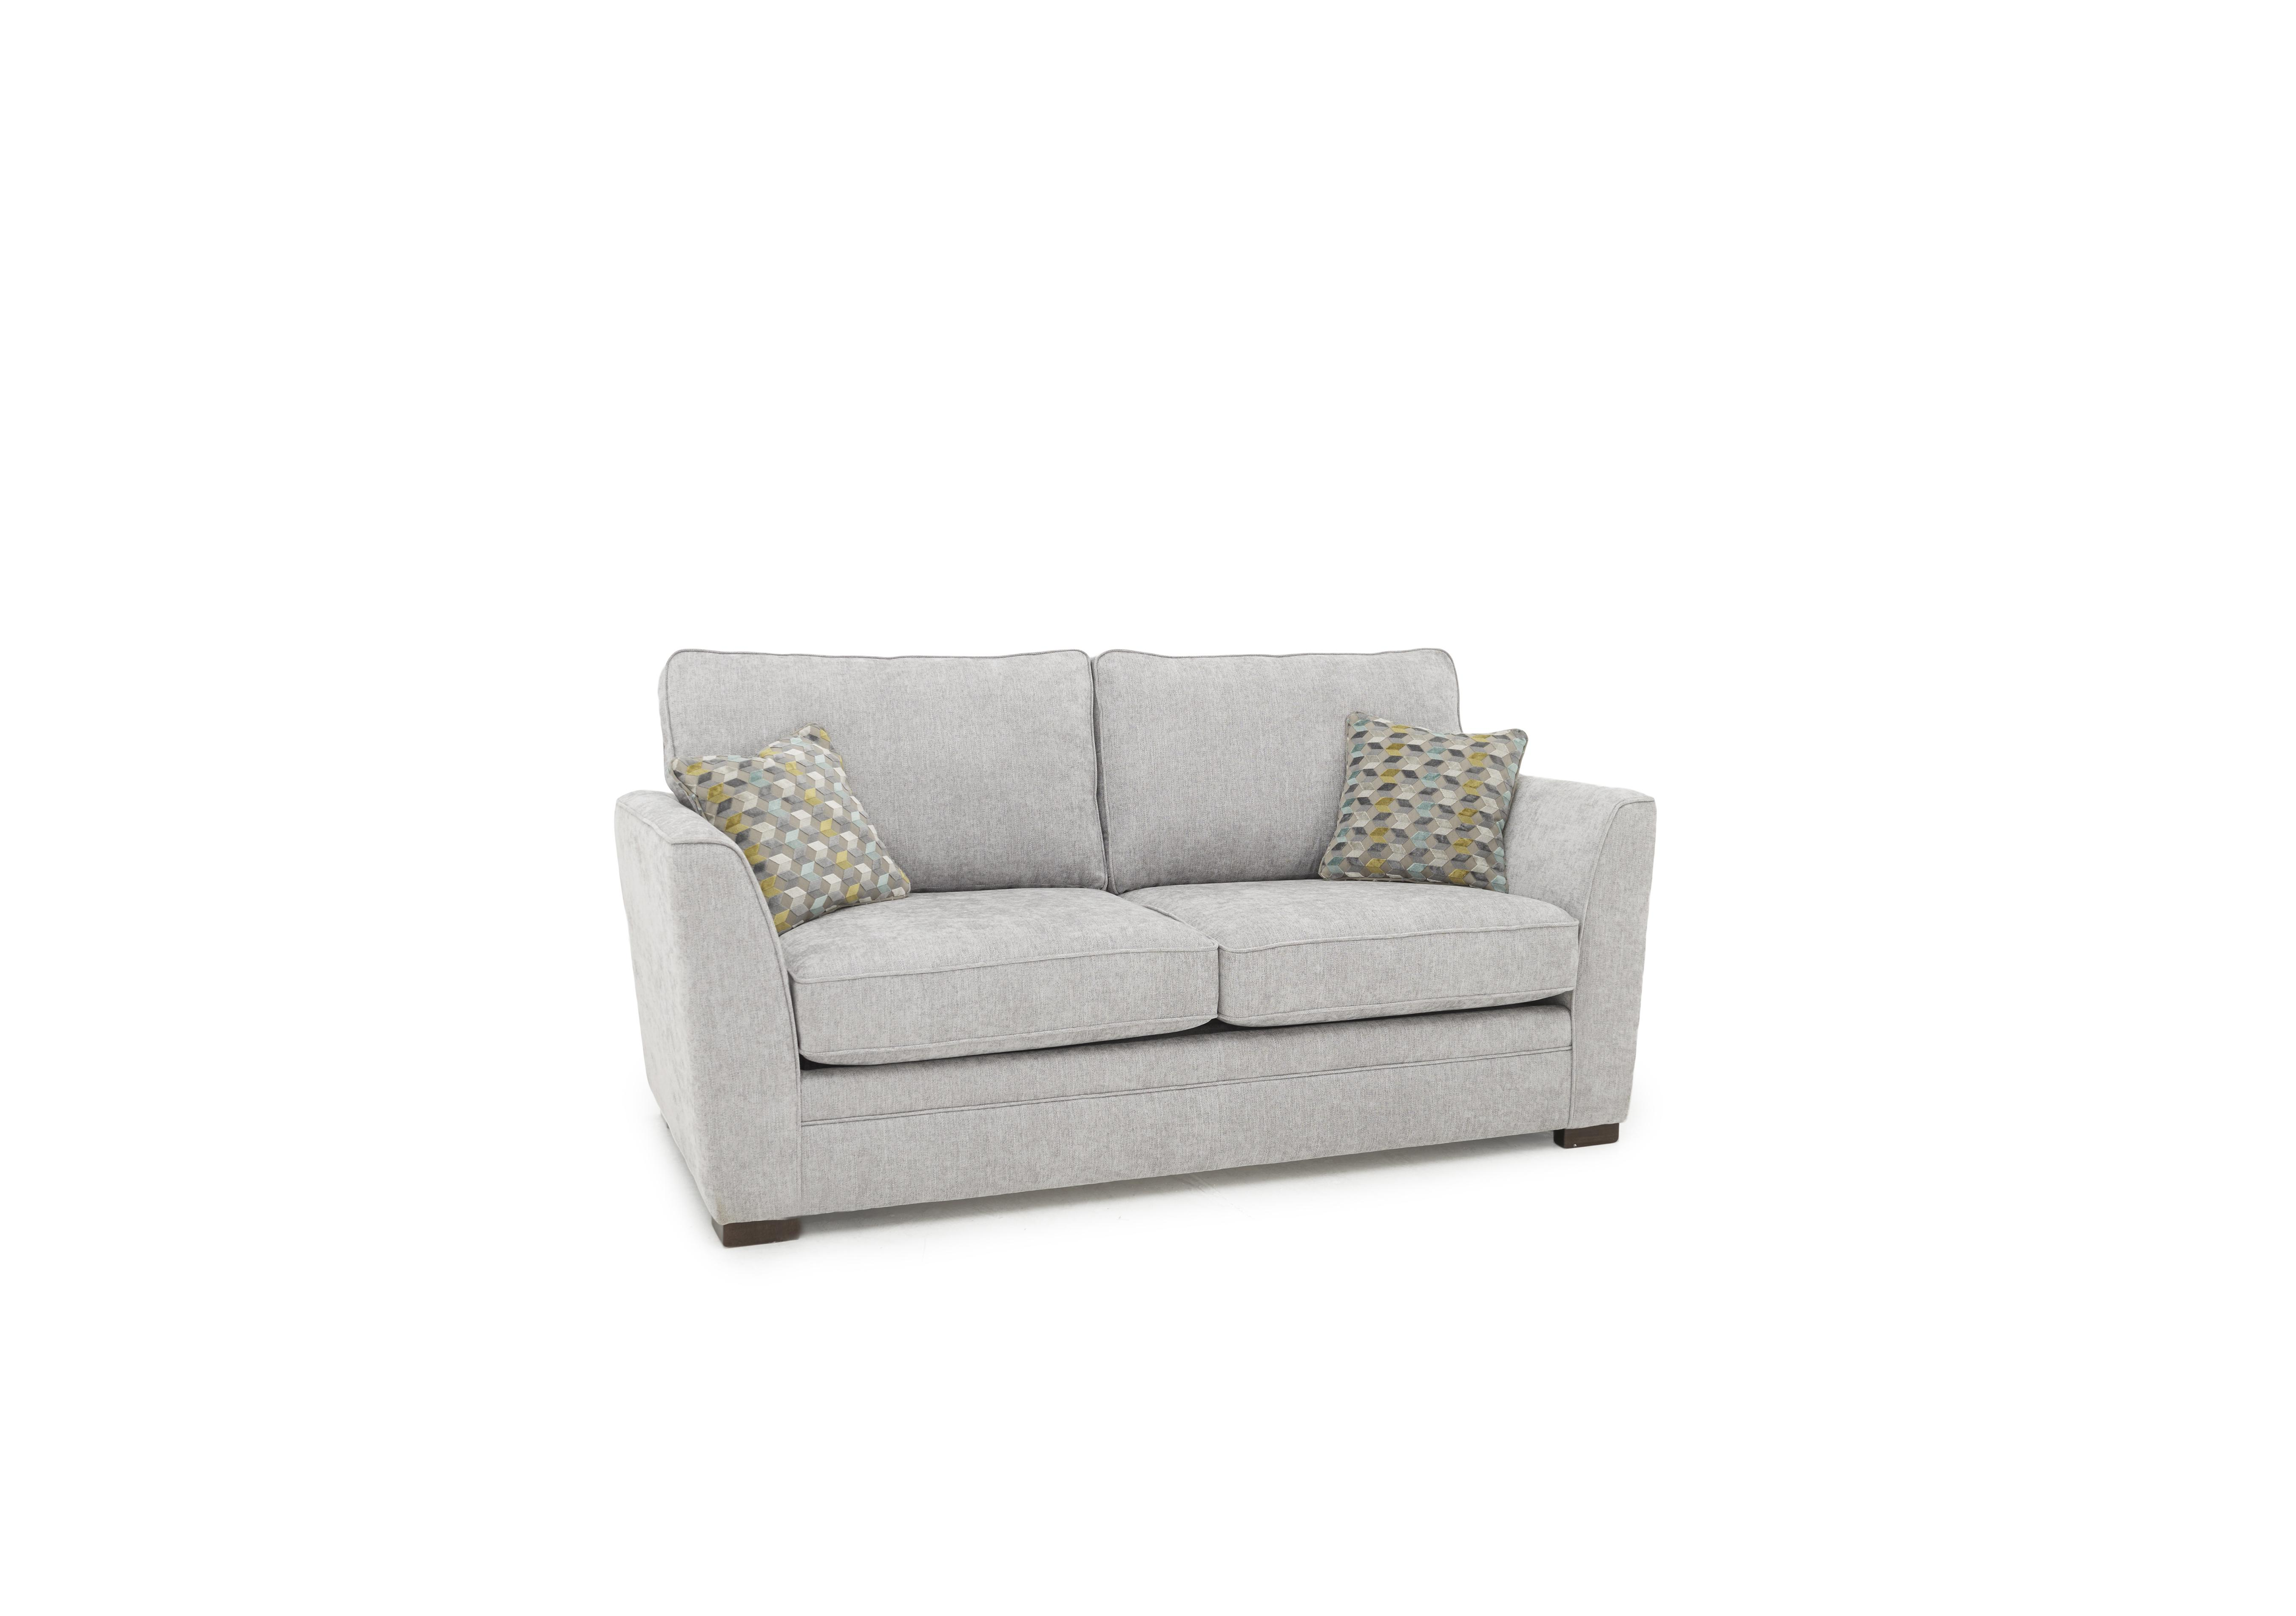 toptip bettsofa guest very comfortable sofa bed the delight large fabric furniture village